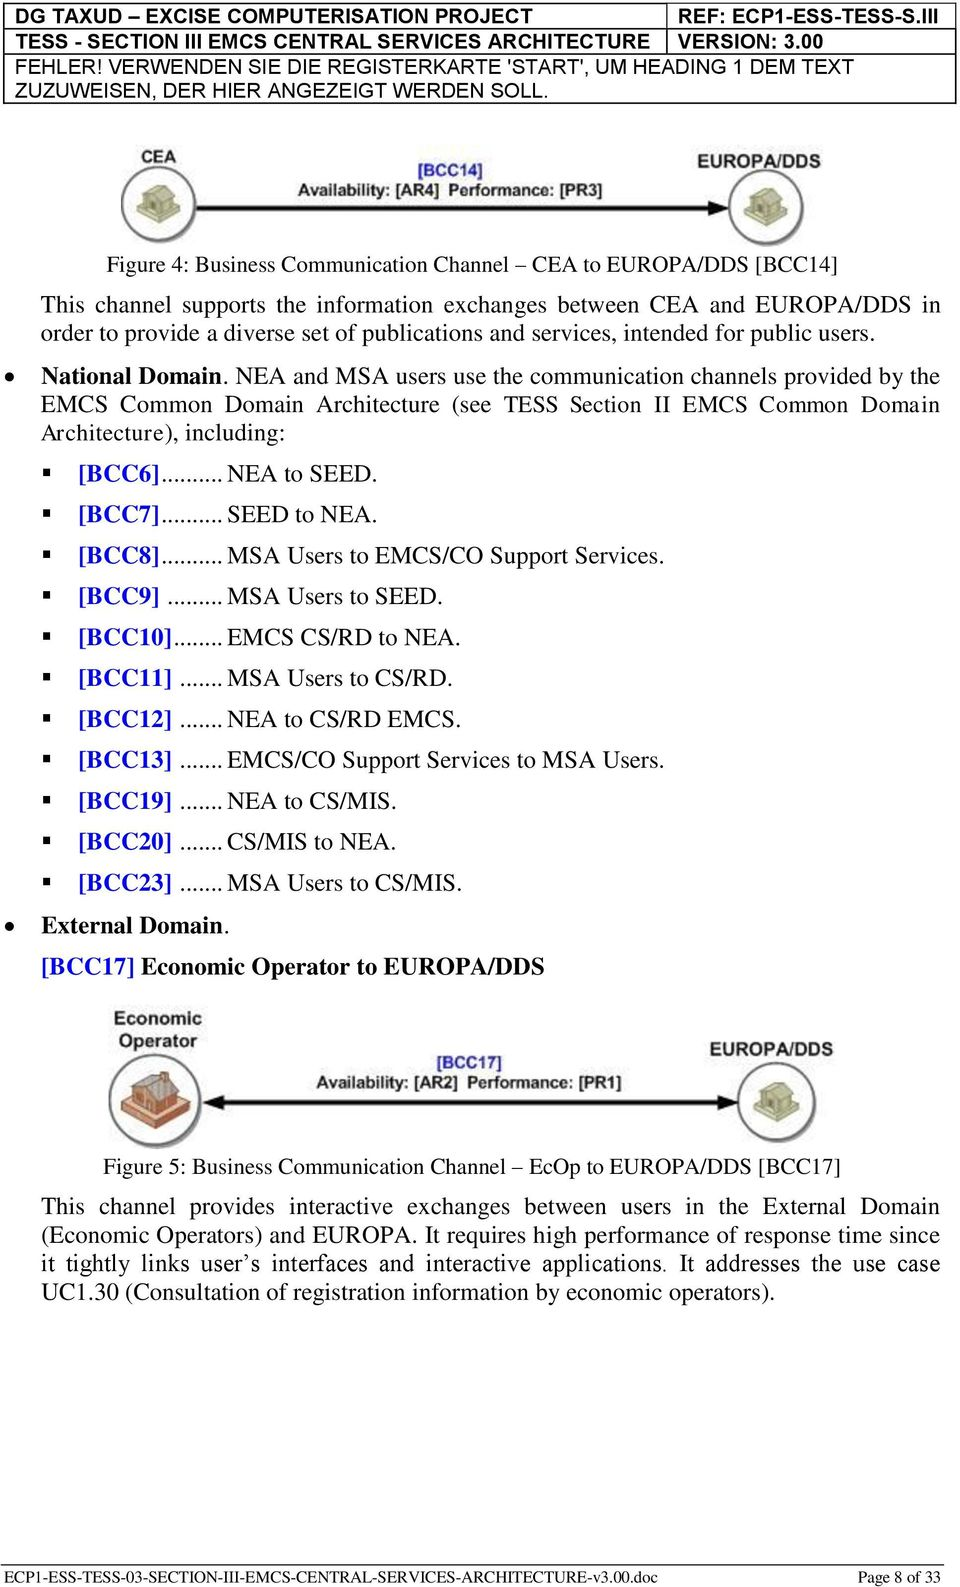 NEA and MSA users use the communication channels provided by the EMCS Common Domain Architecture (see TESS Section II EMCS Common Domain Architecture), including: [BCC6]... NEA to SEED. [BCC7].